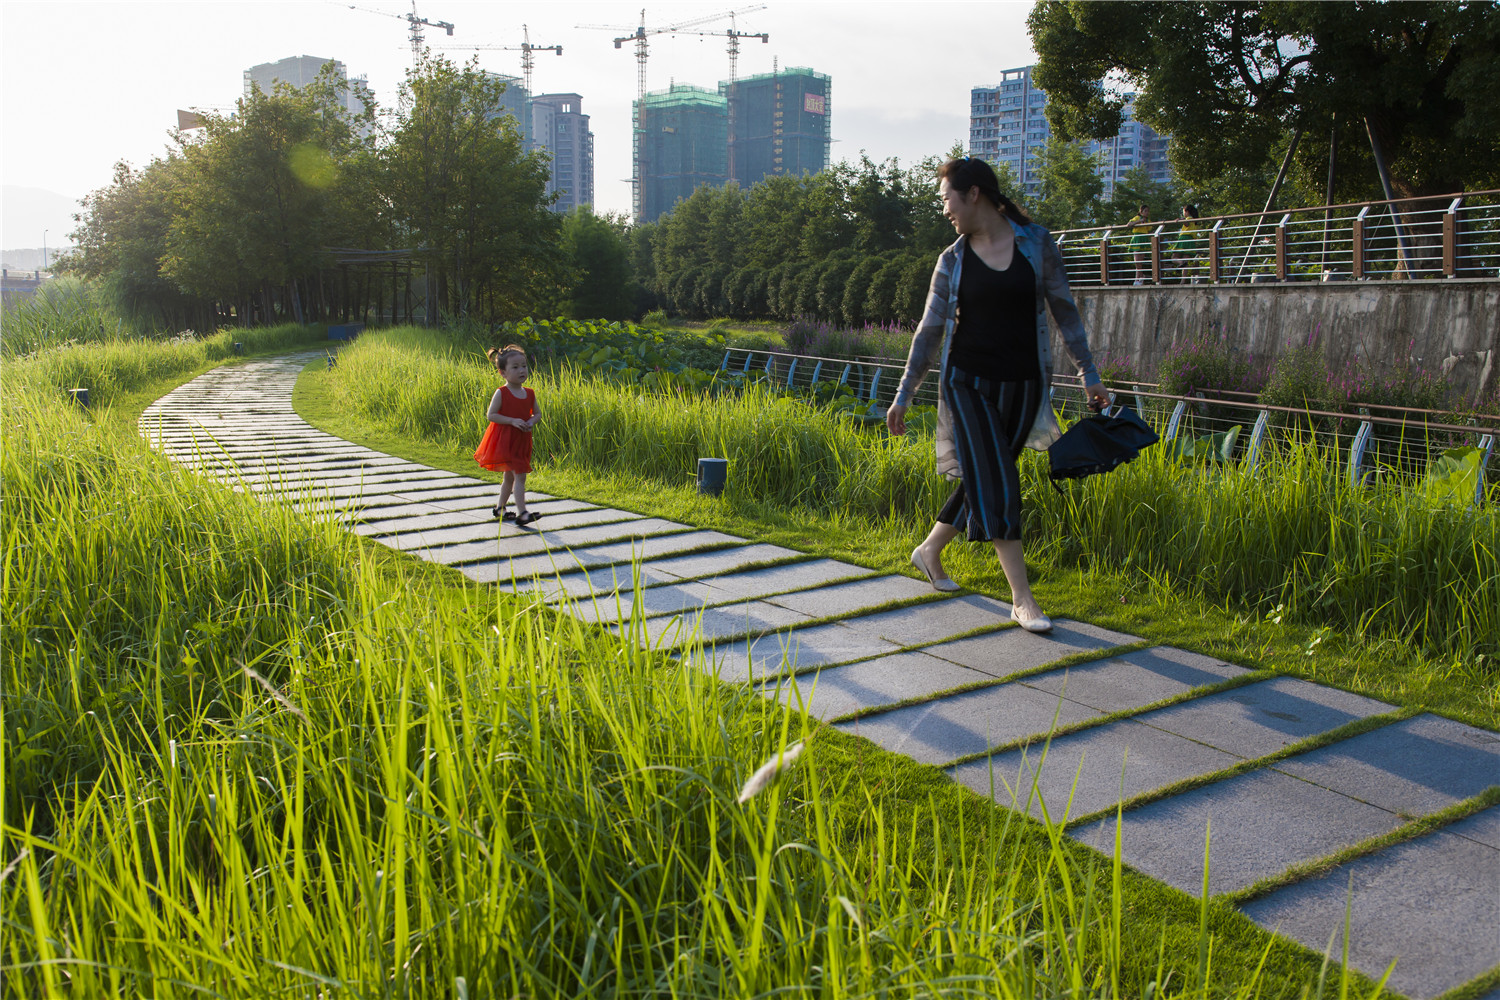 <p>The Floating Gardens at Yongning River Park, Taizhou, China. Photo by Turenscape</p>